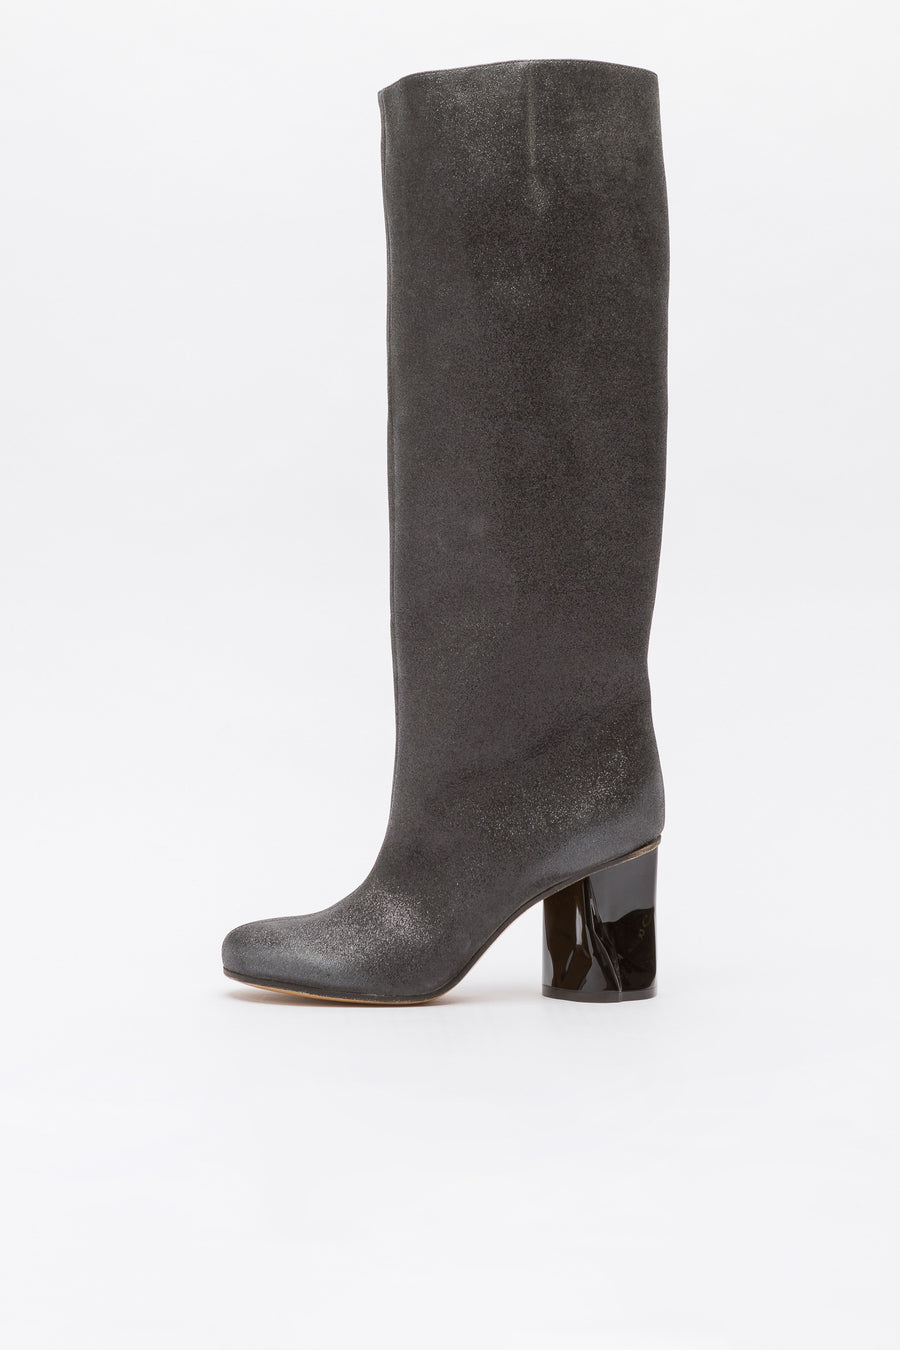 Maison Margiela Glitter Boot in Black - Notre